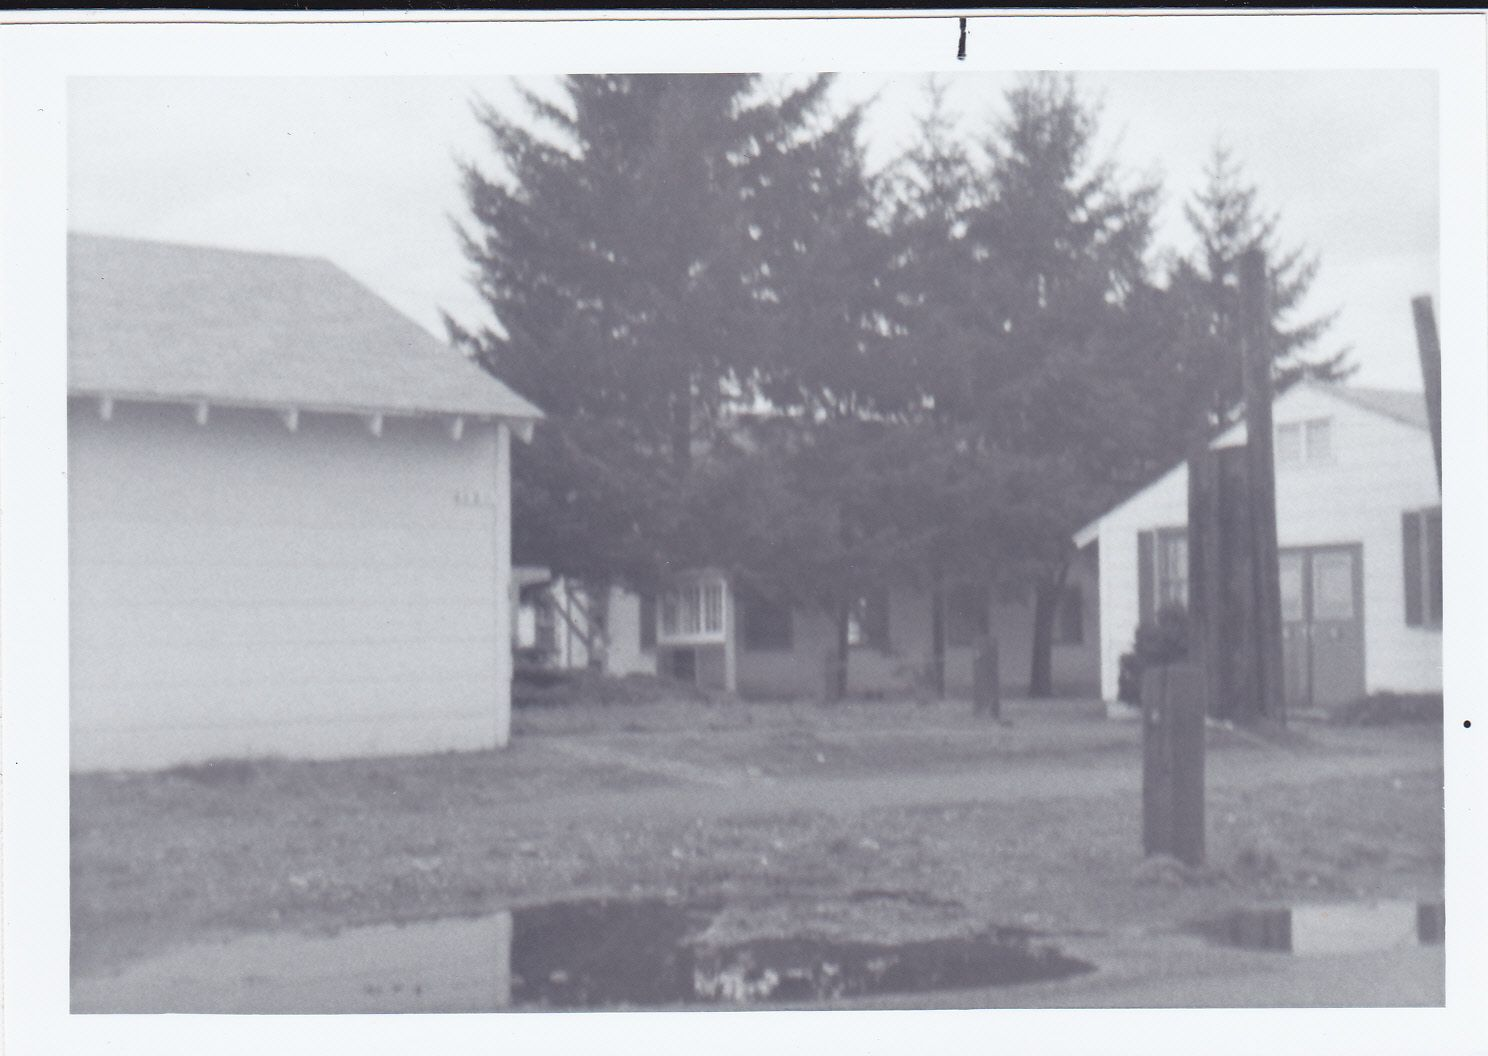 signal corps guide on us army signal corps basic training aug 1968 b 5 1 the barracks behind the trees